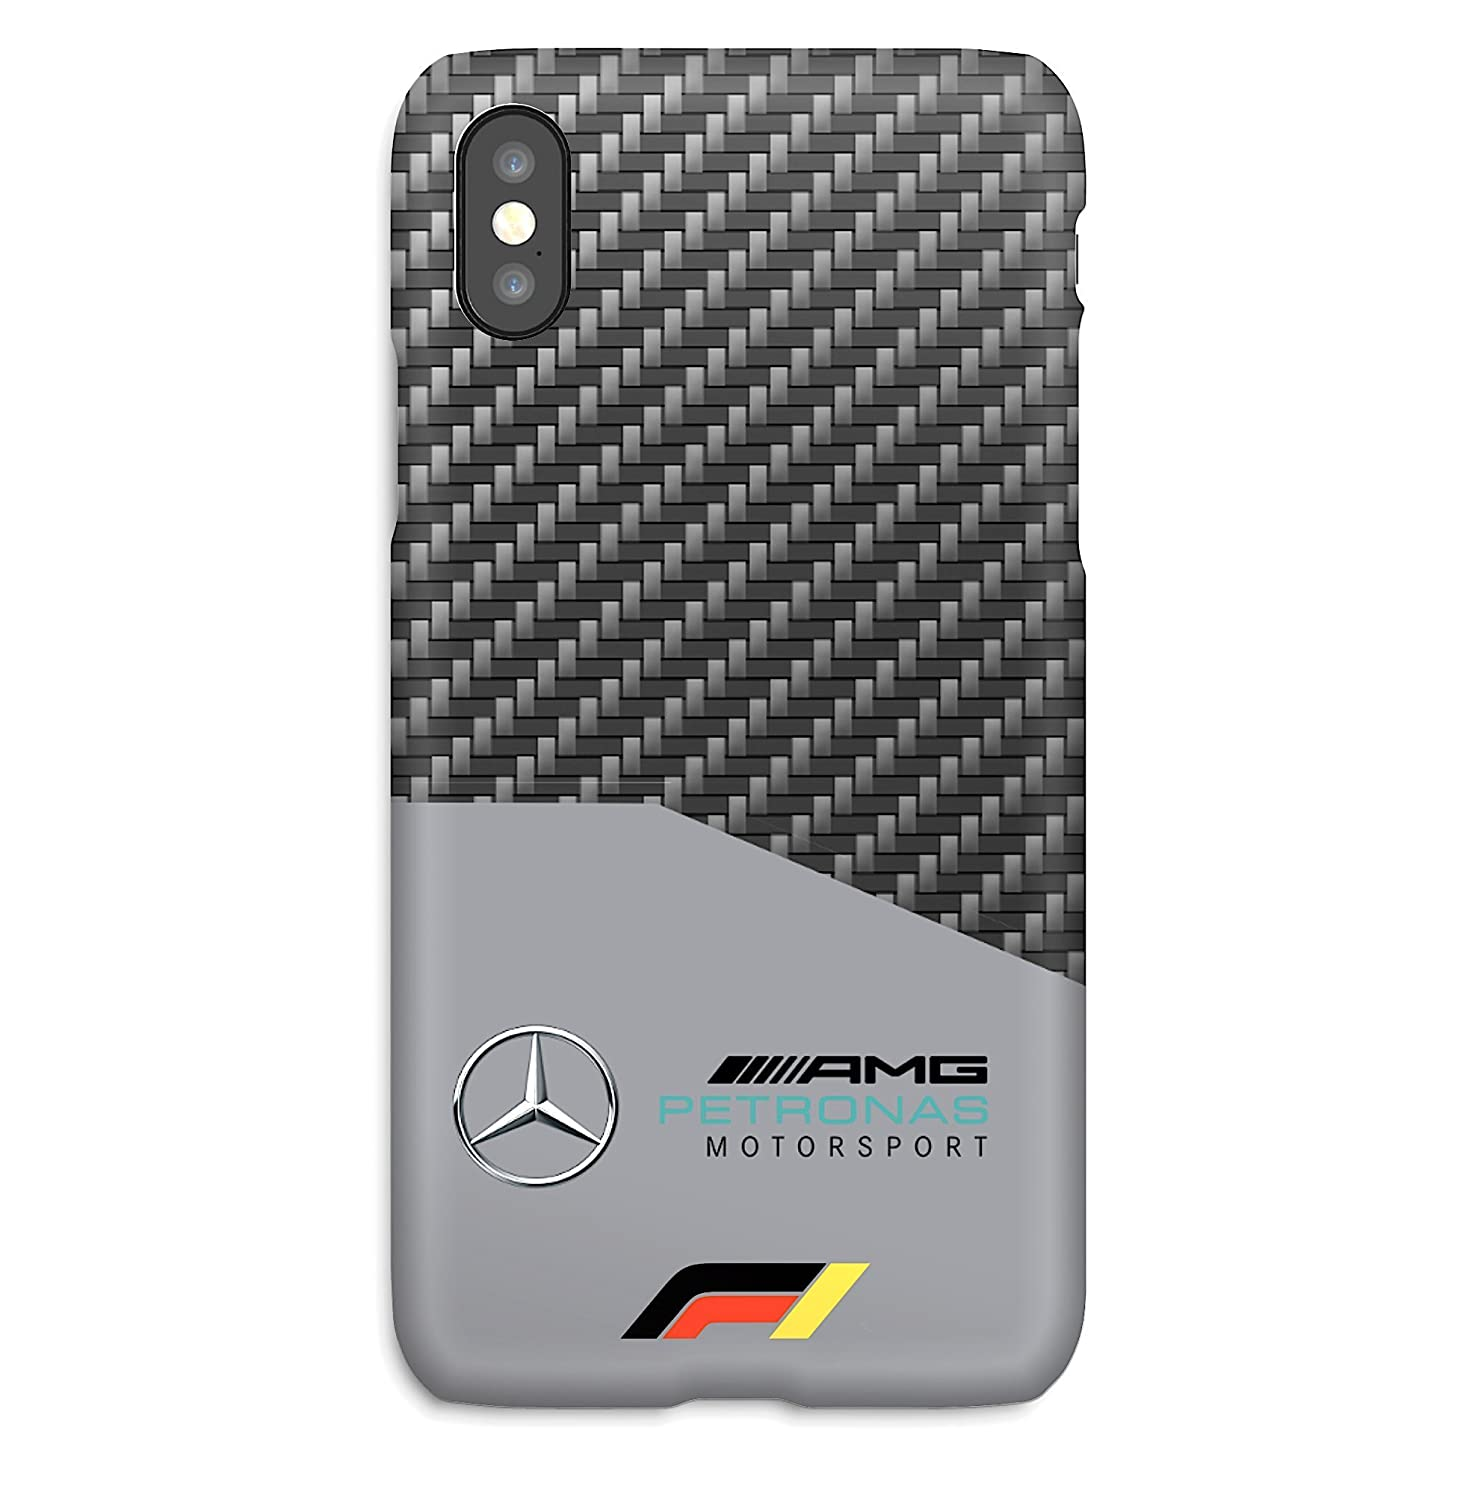 F1 & Mercedes iPhone case XS,XS Max,XR, X, 8, 8+, 7, 7+, 6S, 6, 6S+, 6+, 5C, 5, 5S, 5SE, 4S, 4,